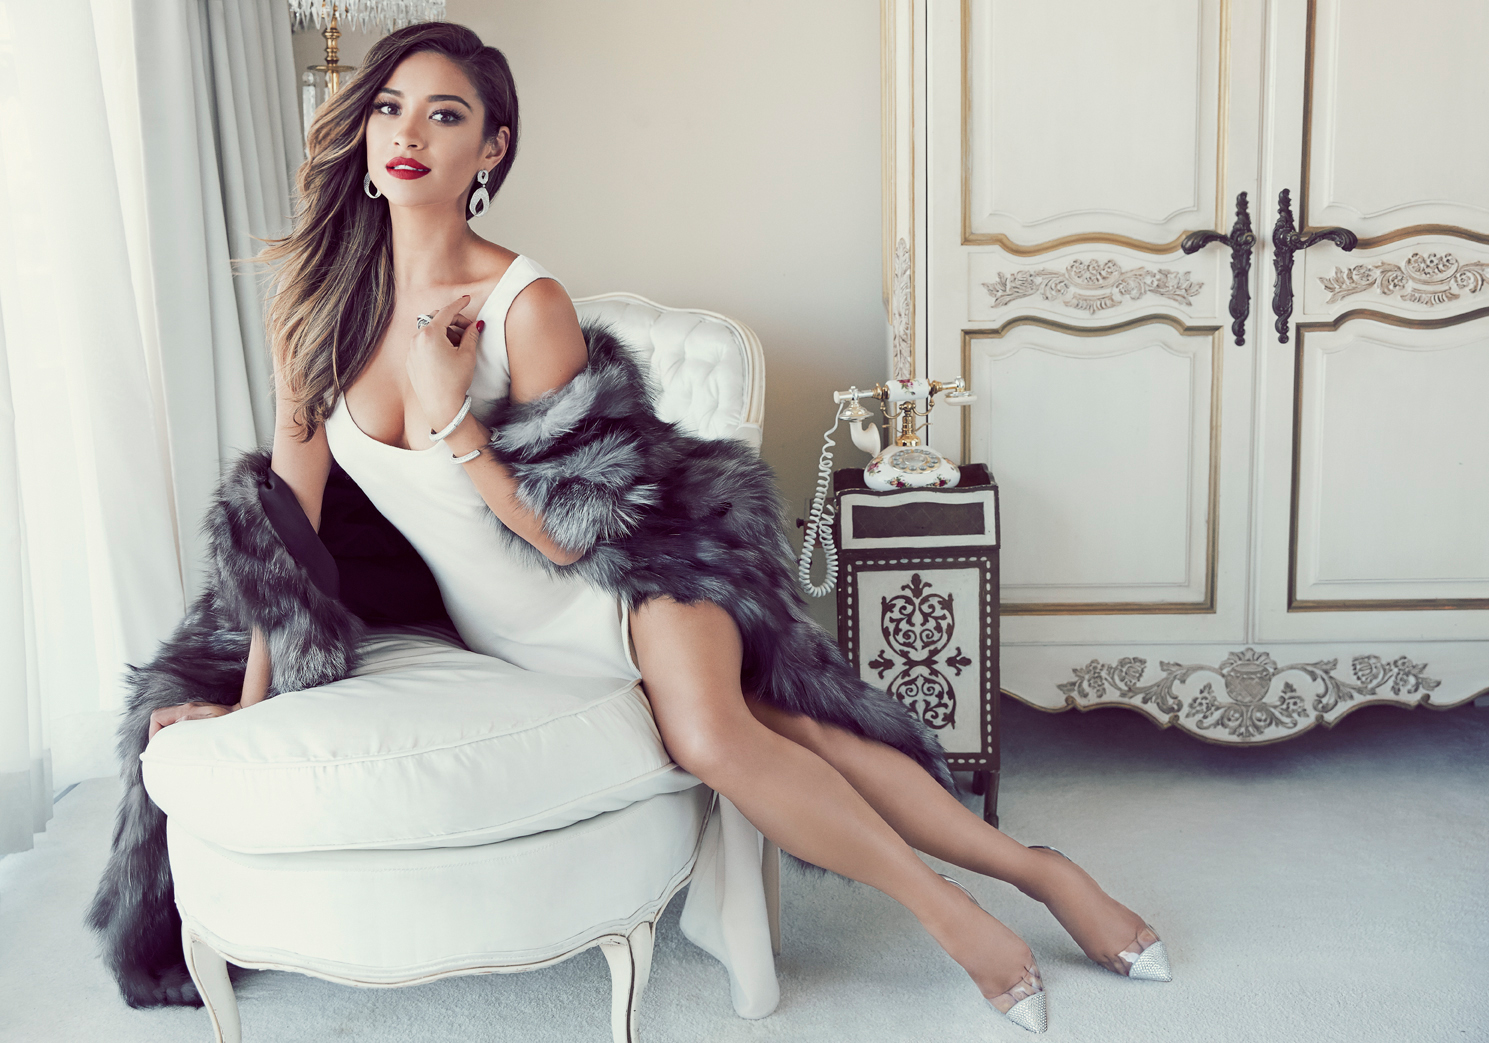 https://www.theplace.ru/archive/shay_mitchell/img/celeber_ru_shay_mitchell_glamour_mx_magazine_photoshoot_2014_02.jpg